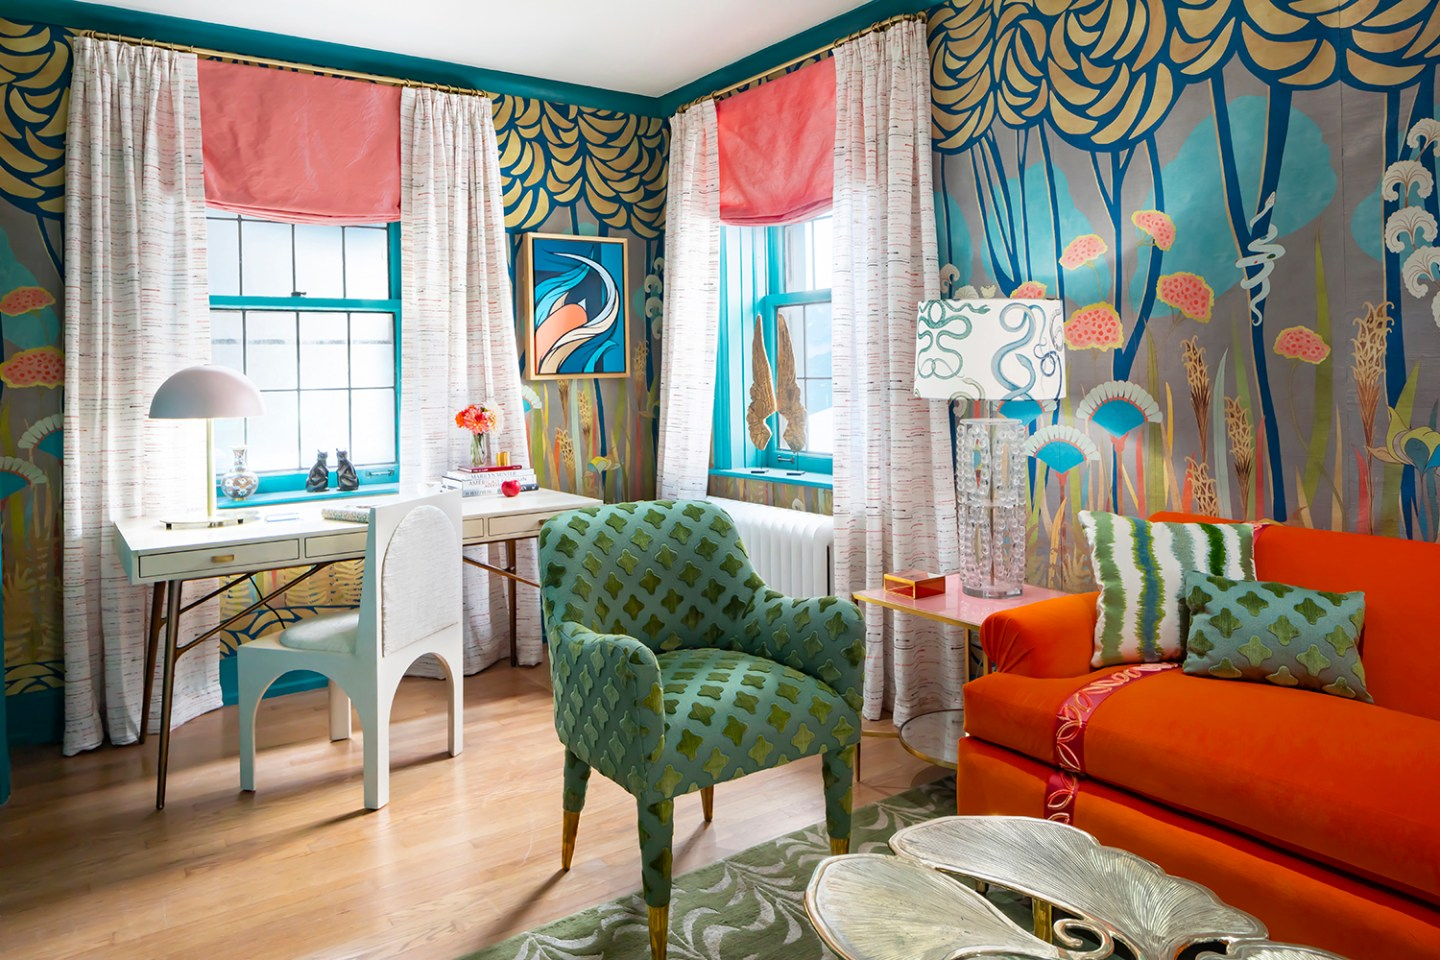 Courtney-McLeod-RMLID-JL-Showhouse_01 Tips for Adding Color and Pattern to a Roomfrom a Louisiana Native